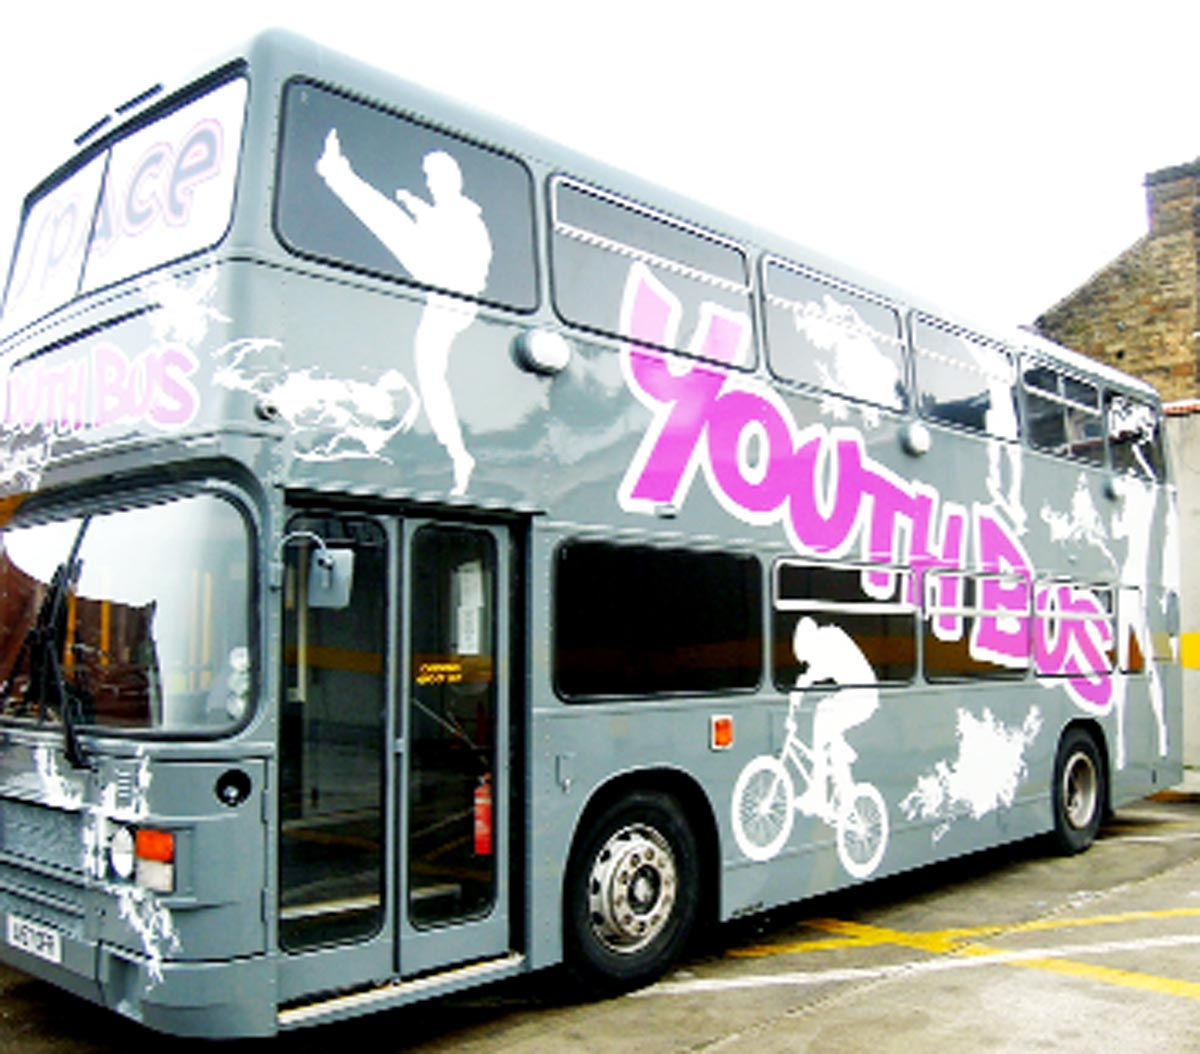 The Space Youth Bus, which has received £250,000 from the Big Lottery Fund to enable it to keep running for another three years